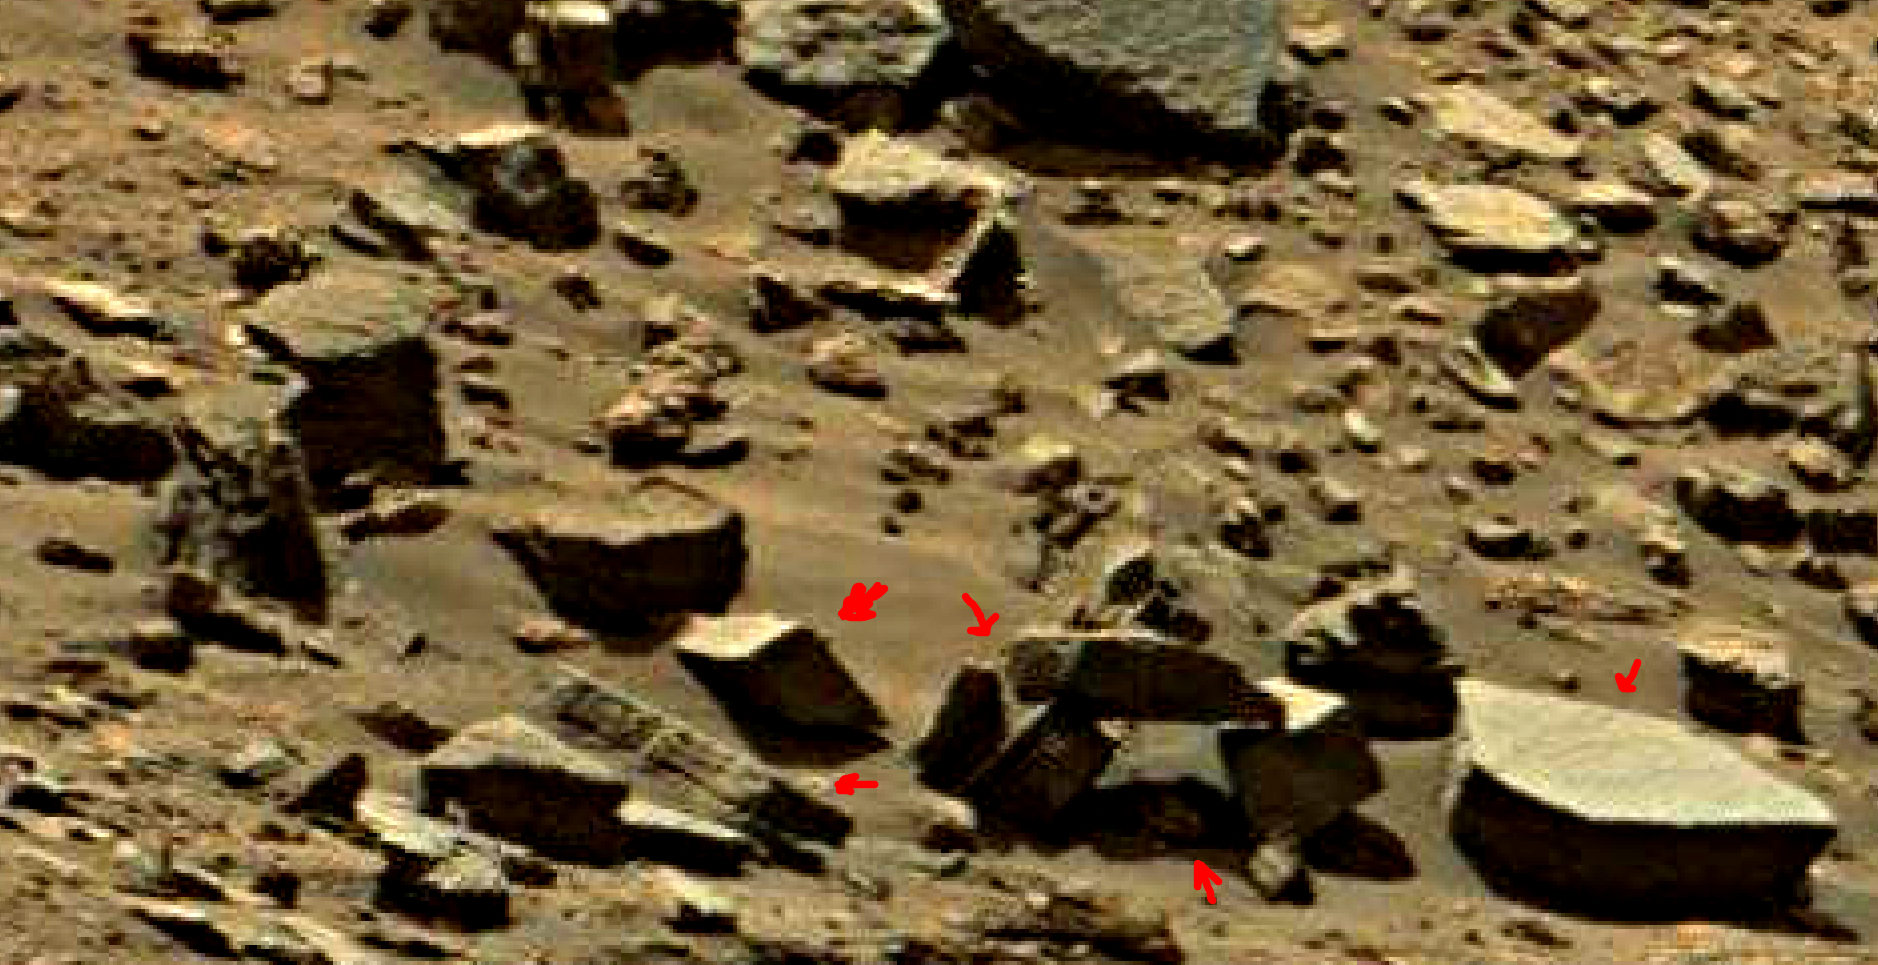 mars sol 1434 anomaly artifacts 9a was life on mars